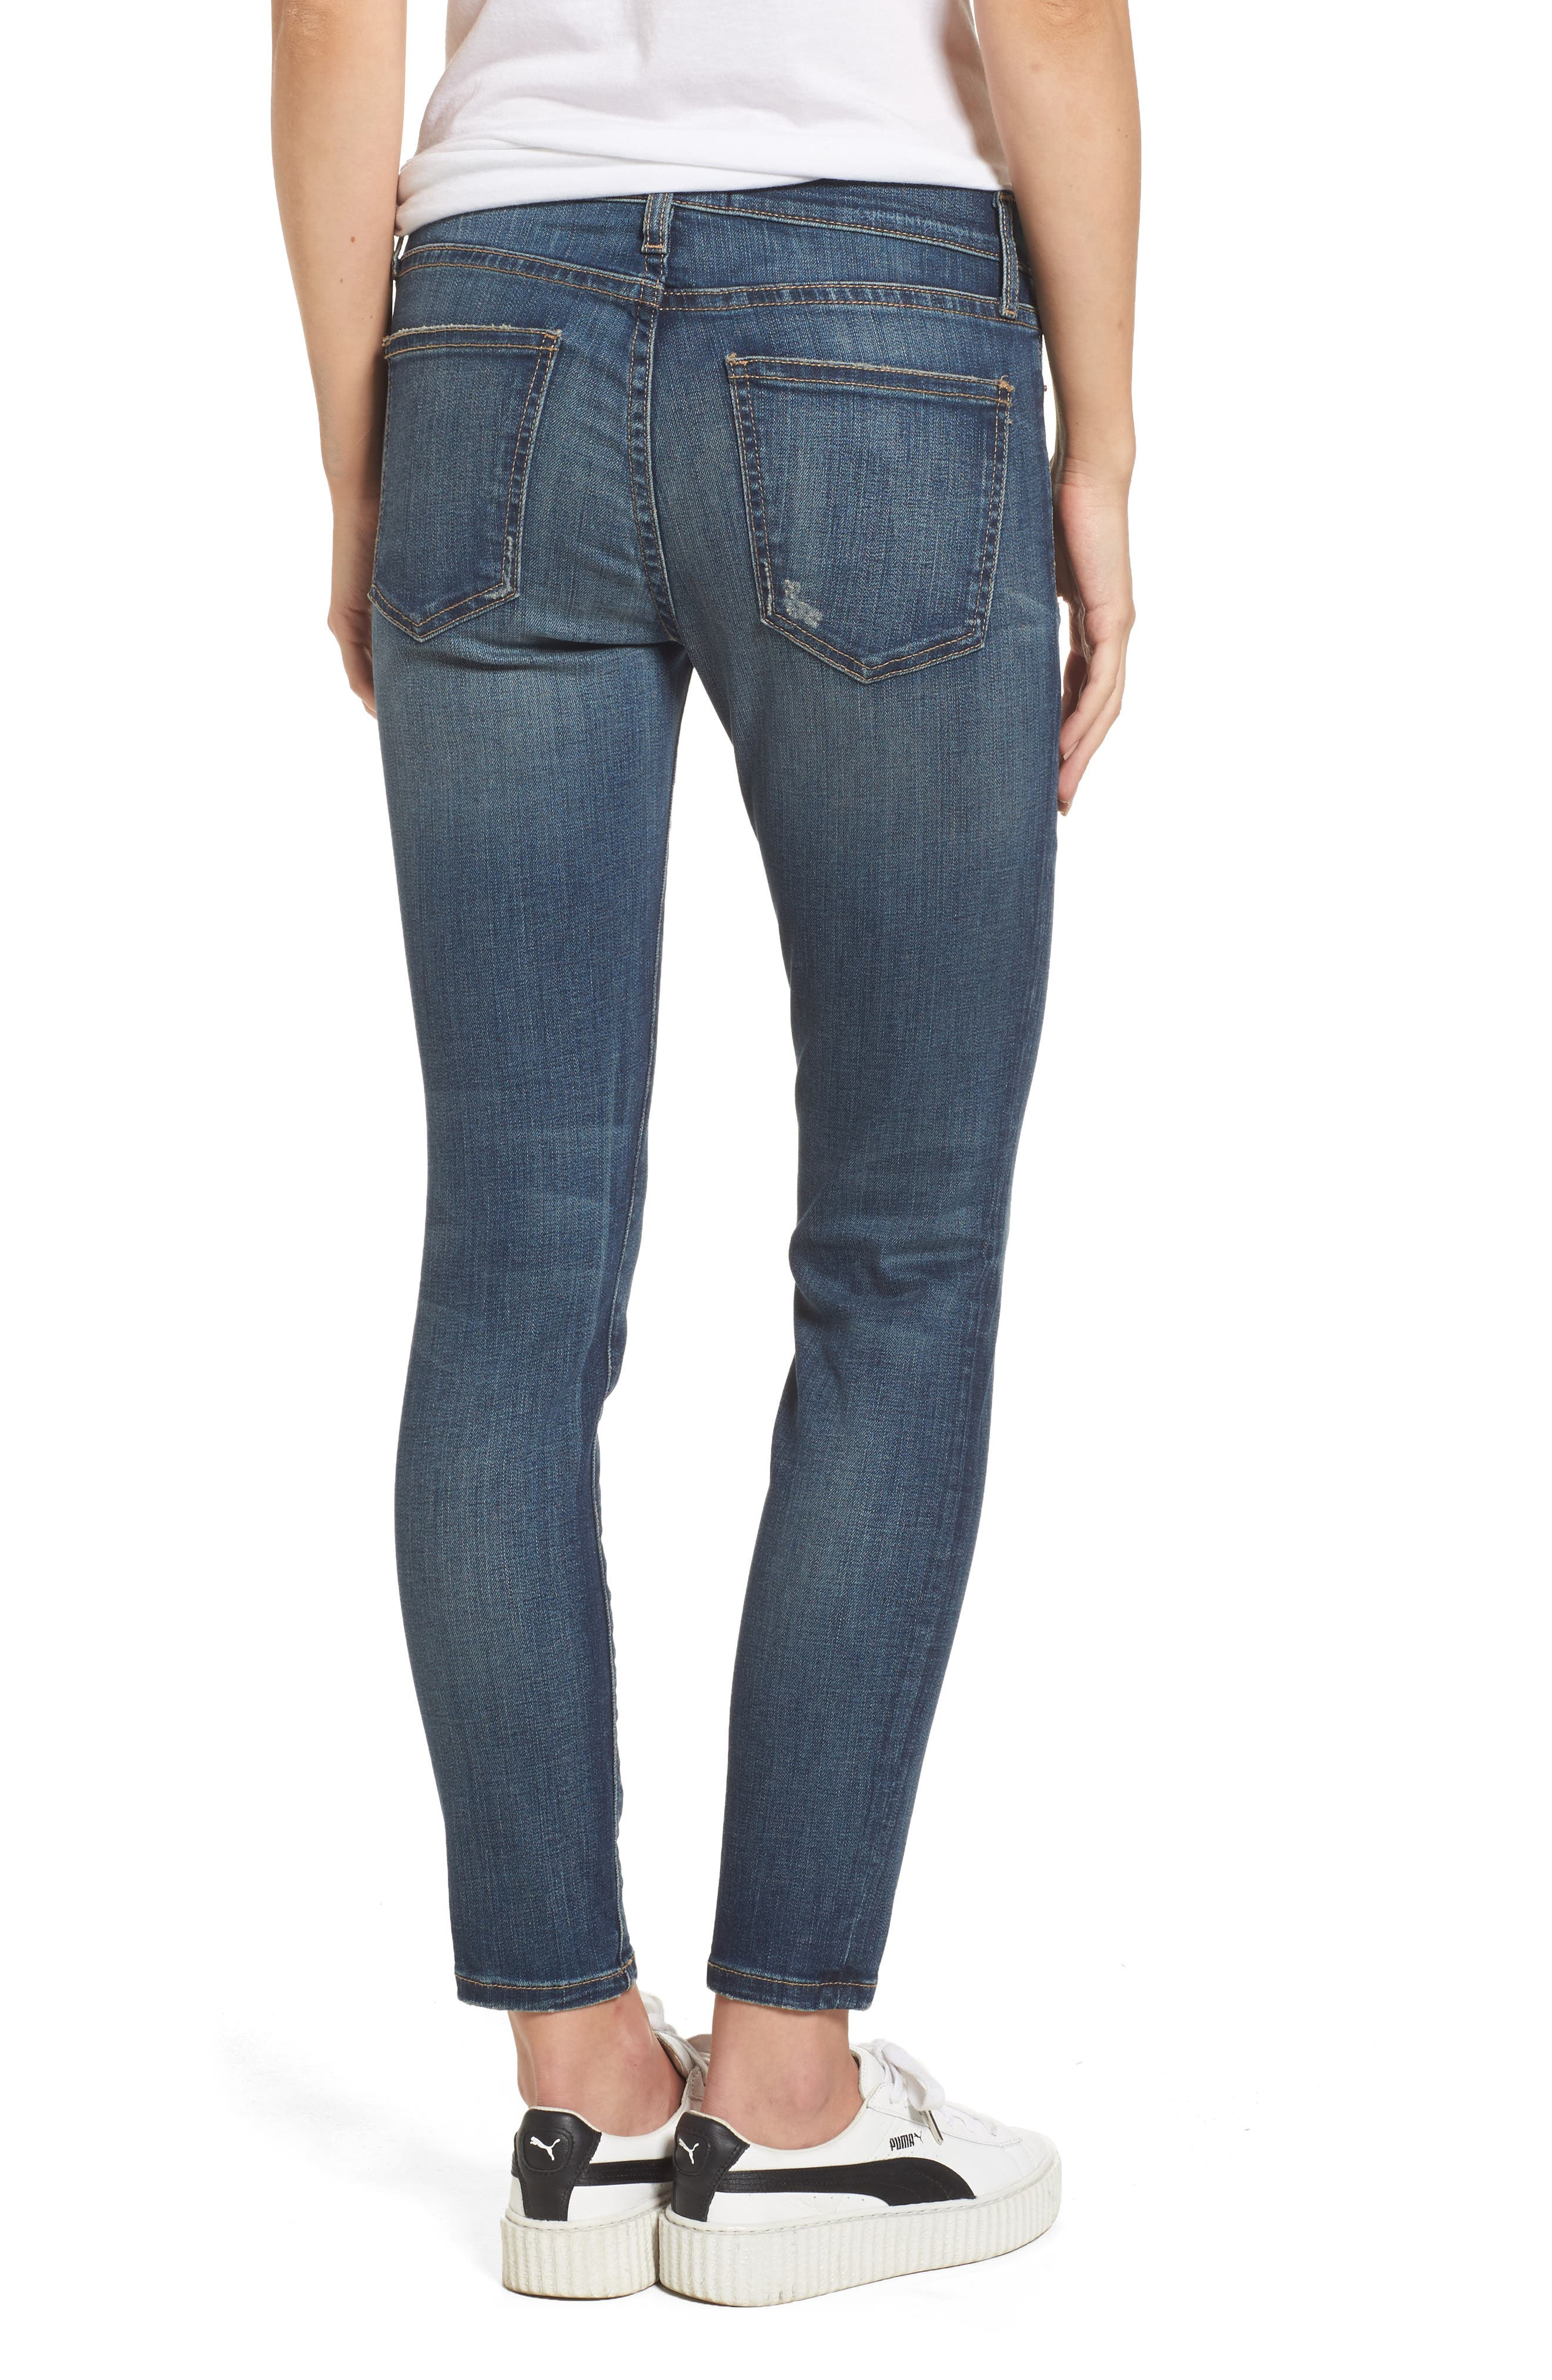 'The Stiletto' Stretch Jeans,                             Alternate thumbnail 3, color,                             477